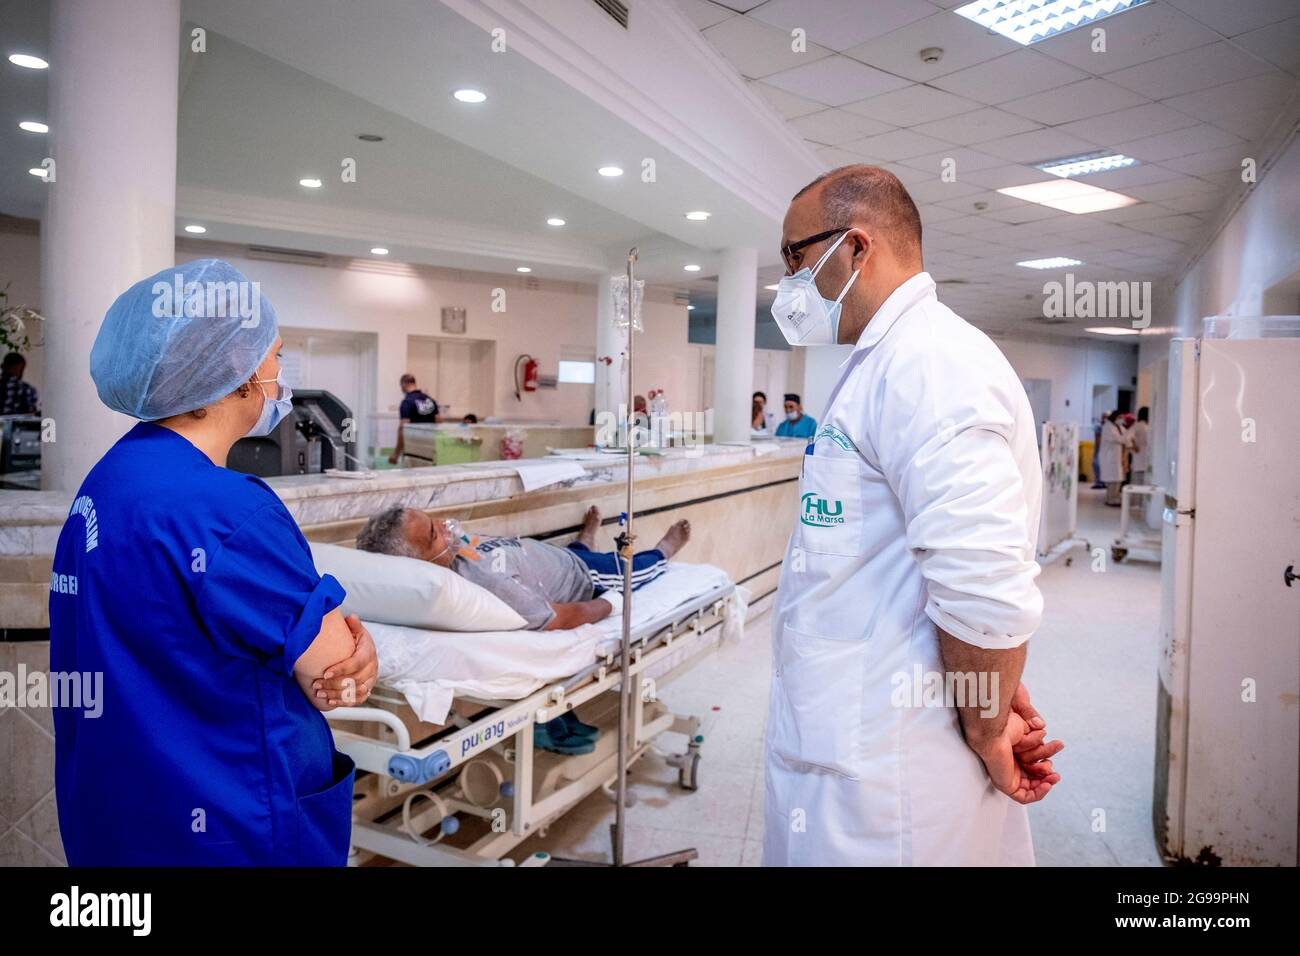 In the emergency department of the Mongi Slim hospital in La Marsa, a northern suburb of Tunis, Tunisia, on July 23, 2021. The head of the department, Dr Nour Nouira, must manage with his team a very tense daily Covid-19 crisis. All rooms, halls and corridors of the service are requisitioned for Covid cases, while at the same time managing daily emergencies. The tension of the oxygen flow very solicited by the overloading of patients is the major problem in addition to the understaffing of the personnel vis-a-vis the variant Delta. Photo by Nicolas Fauque/Images de Tunisie/ABACAPRESS.COM Stock Photo